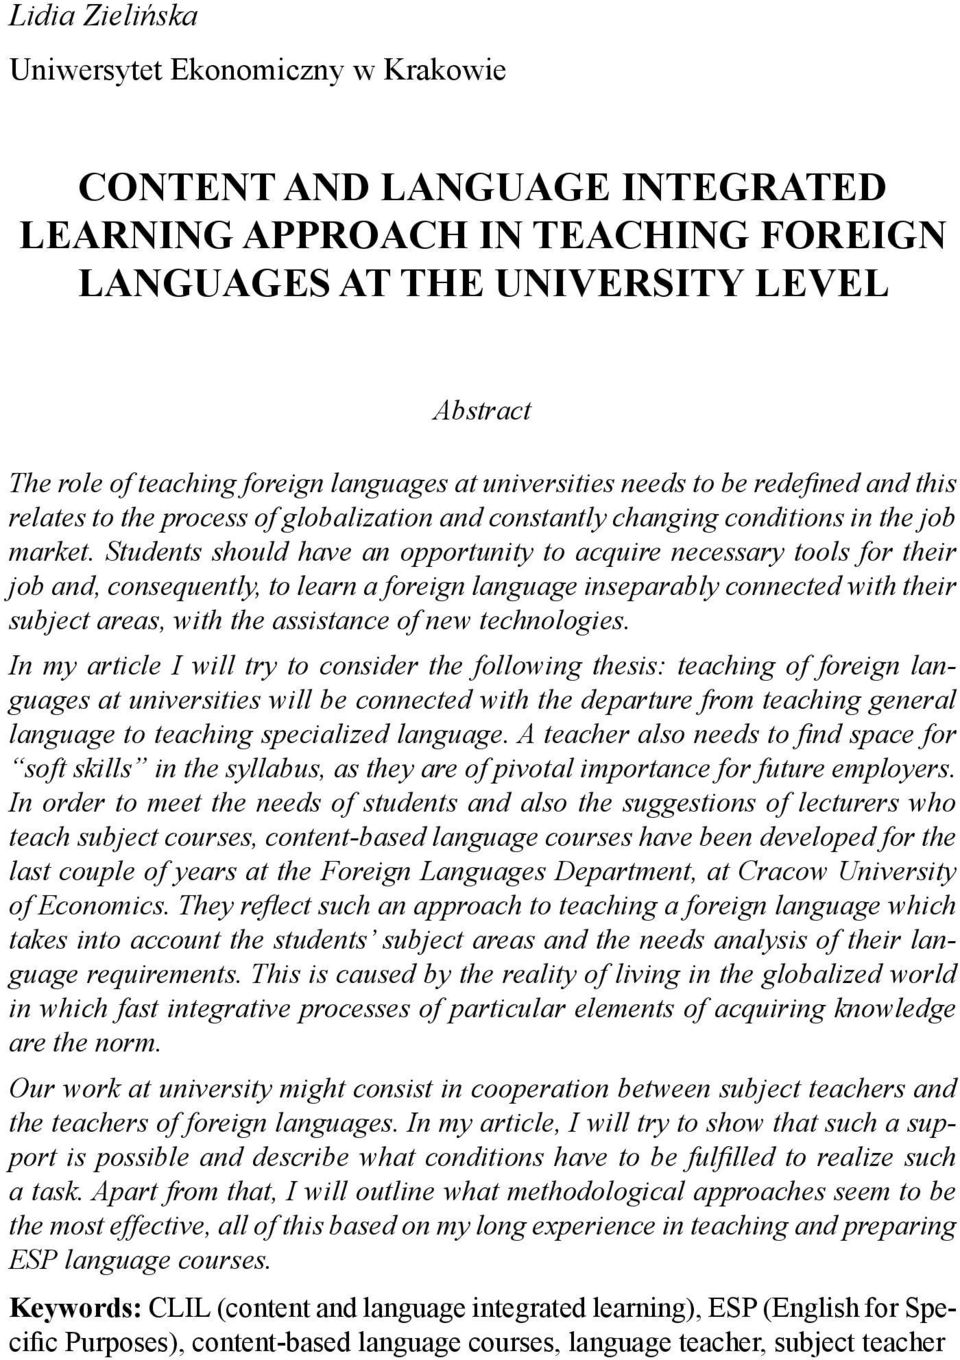 Students should have an opportunity to acquire necessary tools for their job and, consequently, to learn a foreign language inseparably connected with their subject areas, with the assistance of new